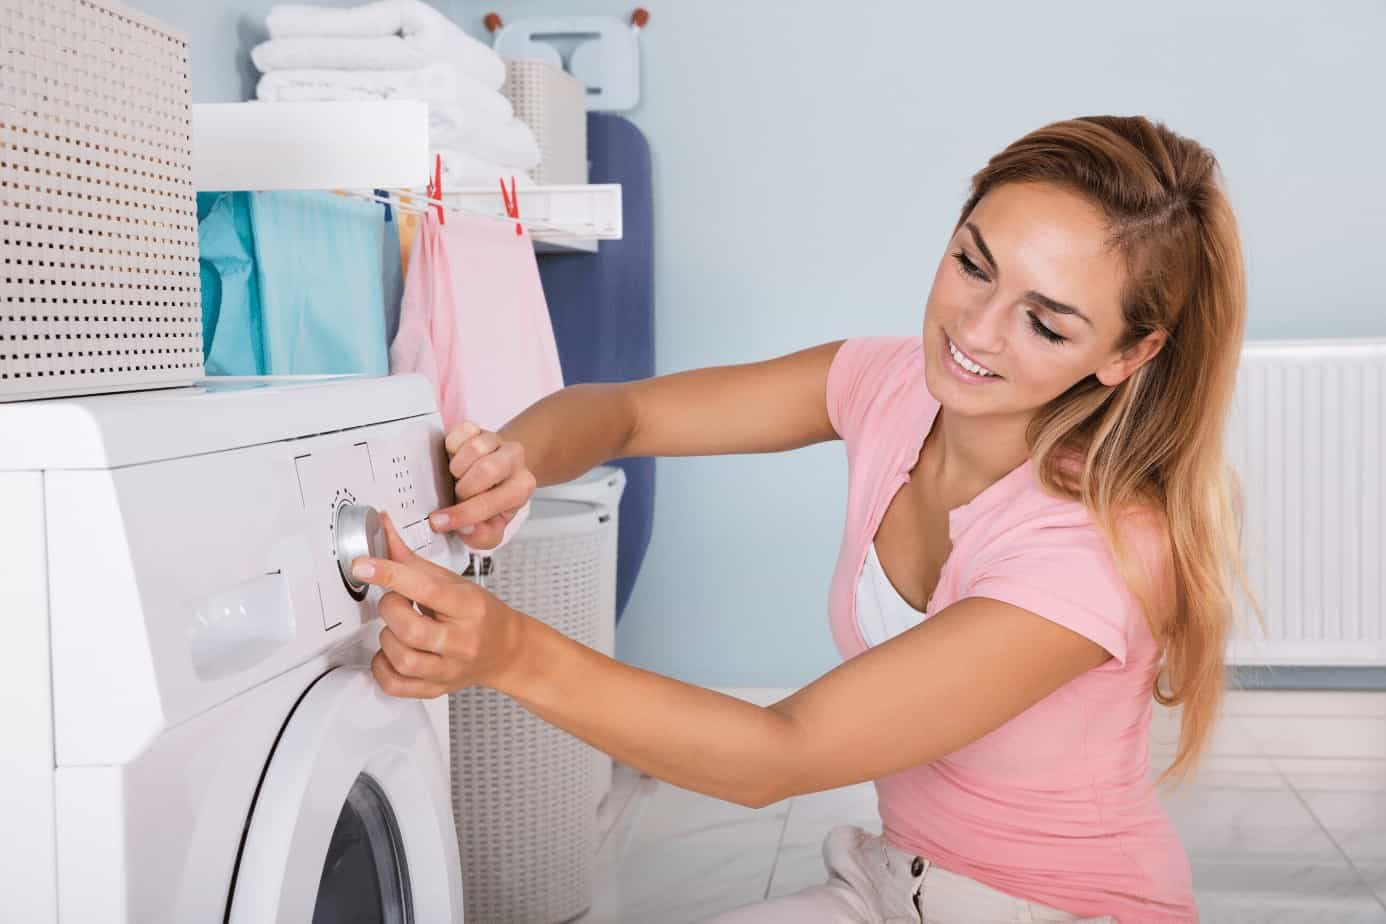 lady doing laundry turn on washer